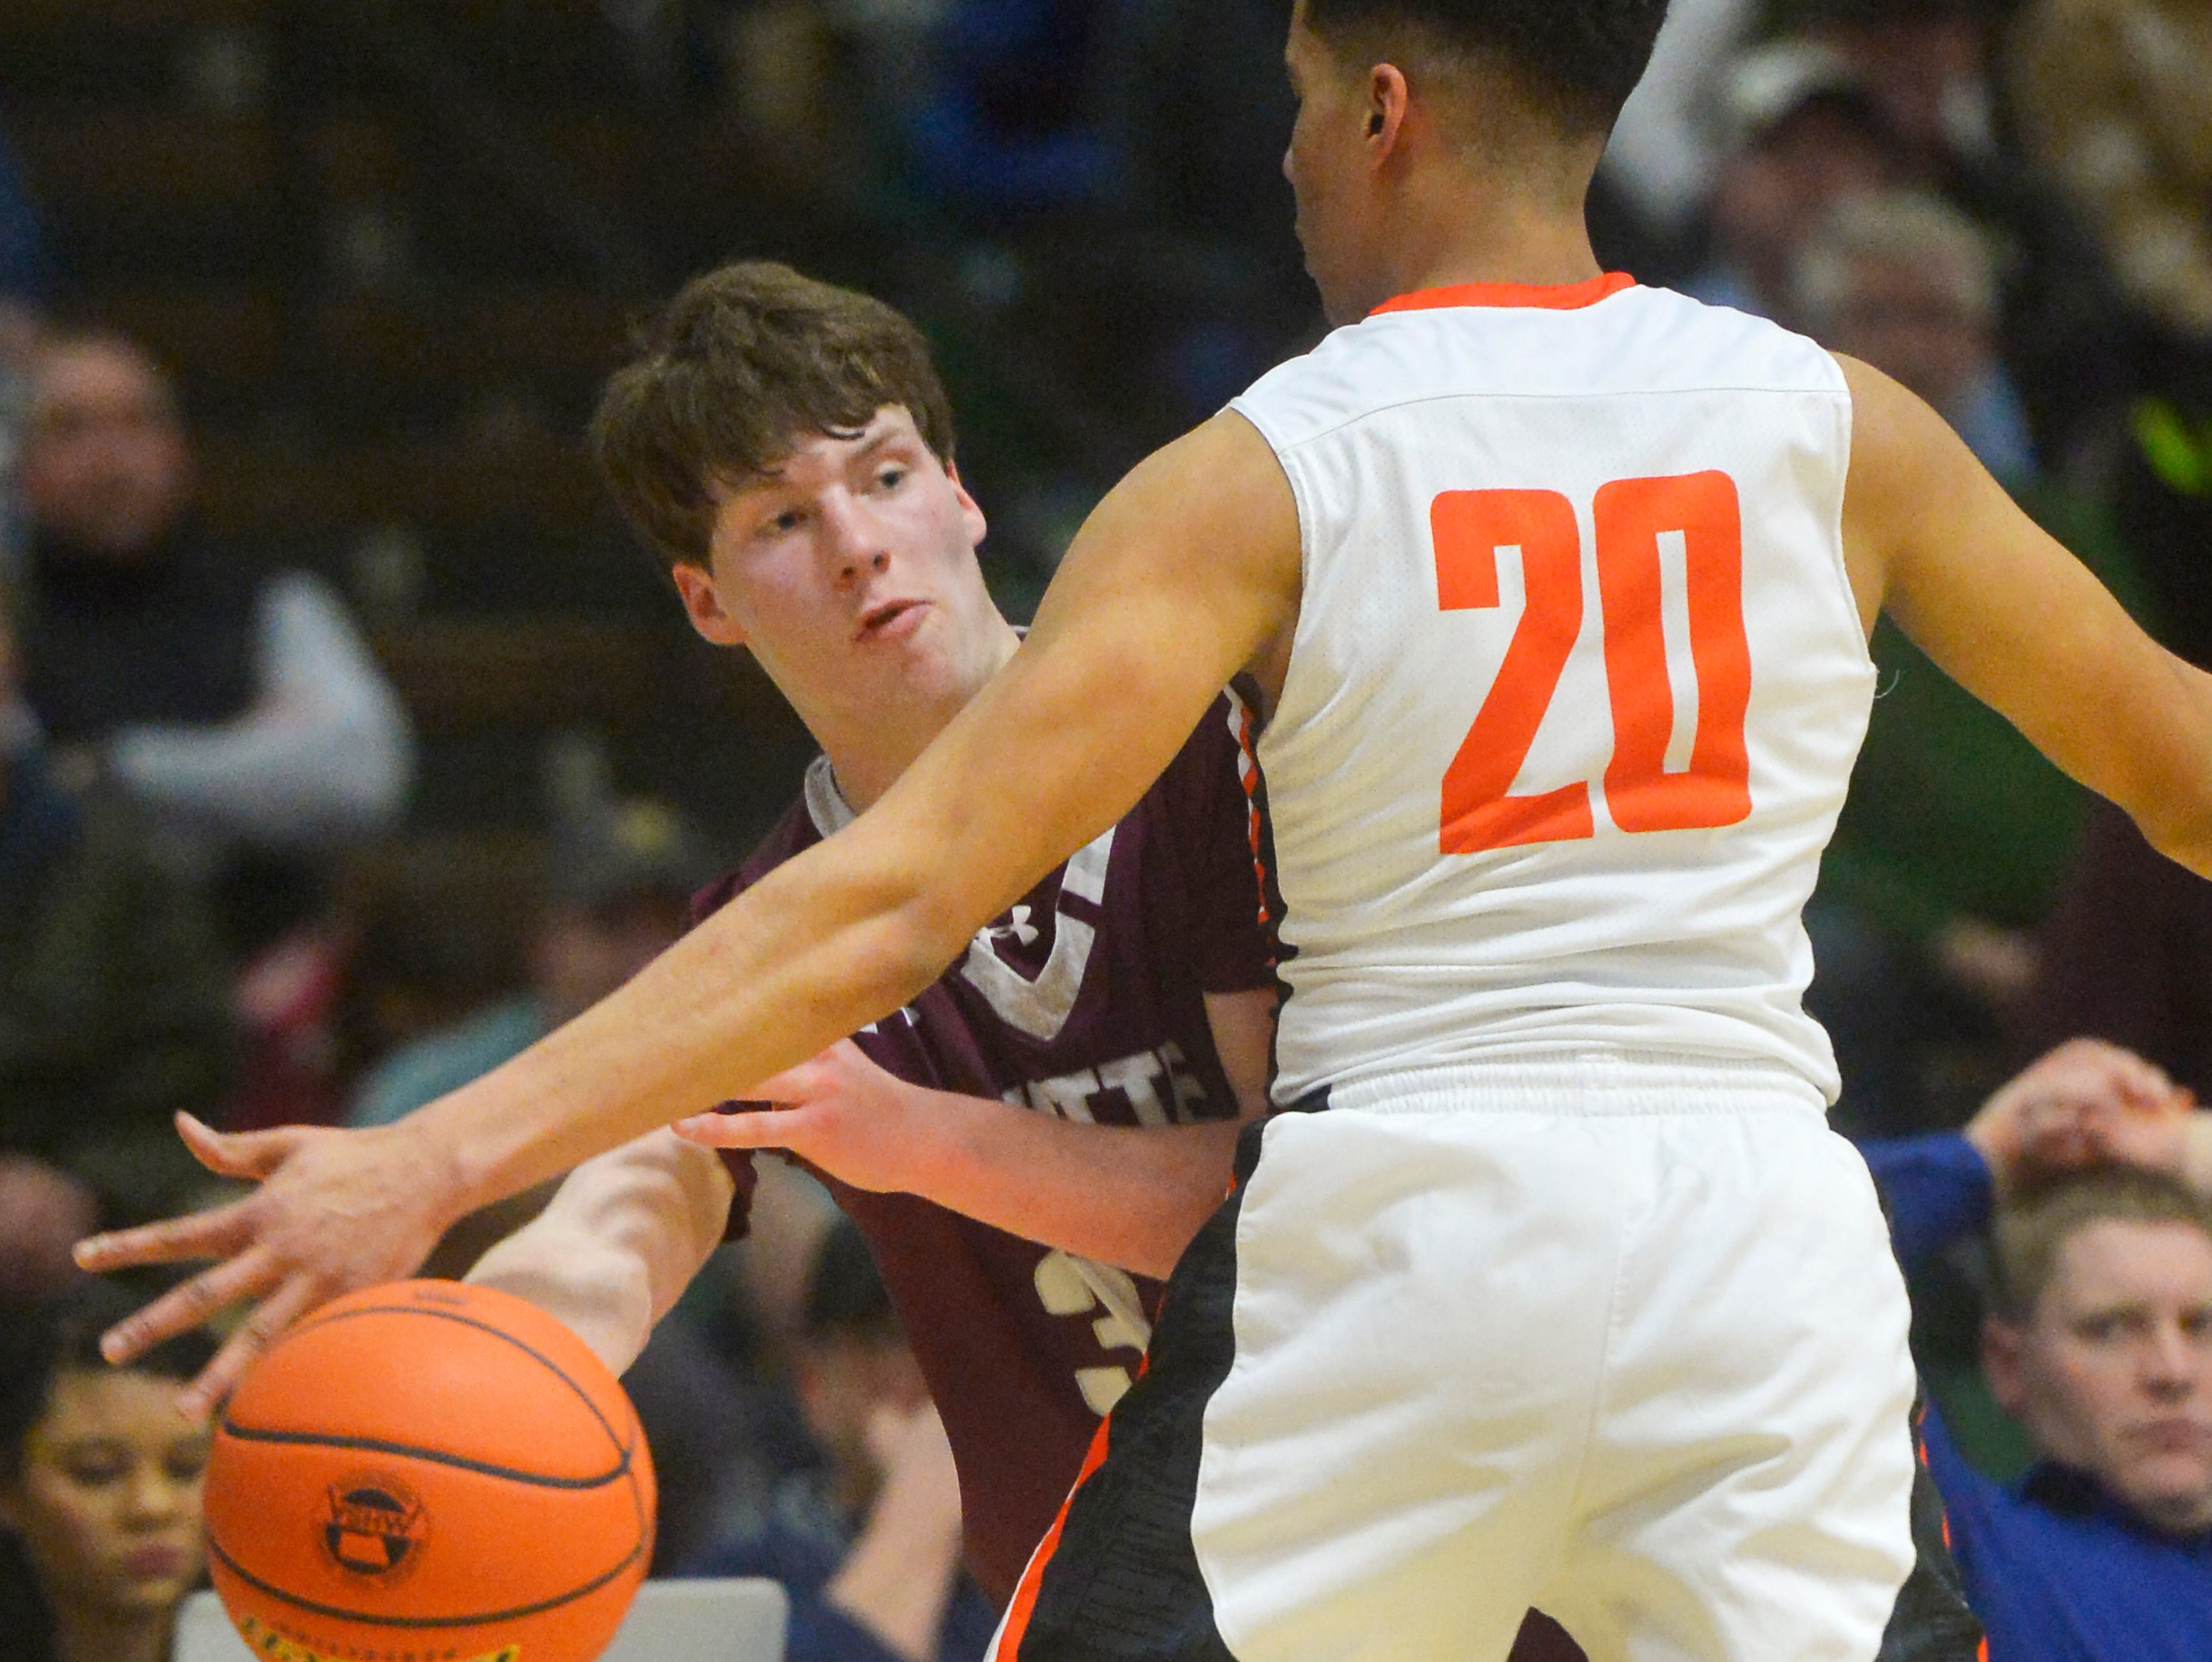 Harding and Butte Central boys play during the semifinal game of the State Class A Basketball Tournament in the Four Seasons Arena, Friday.